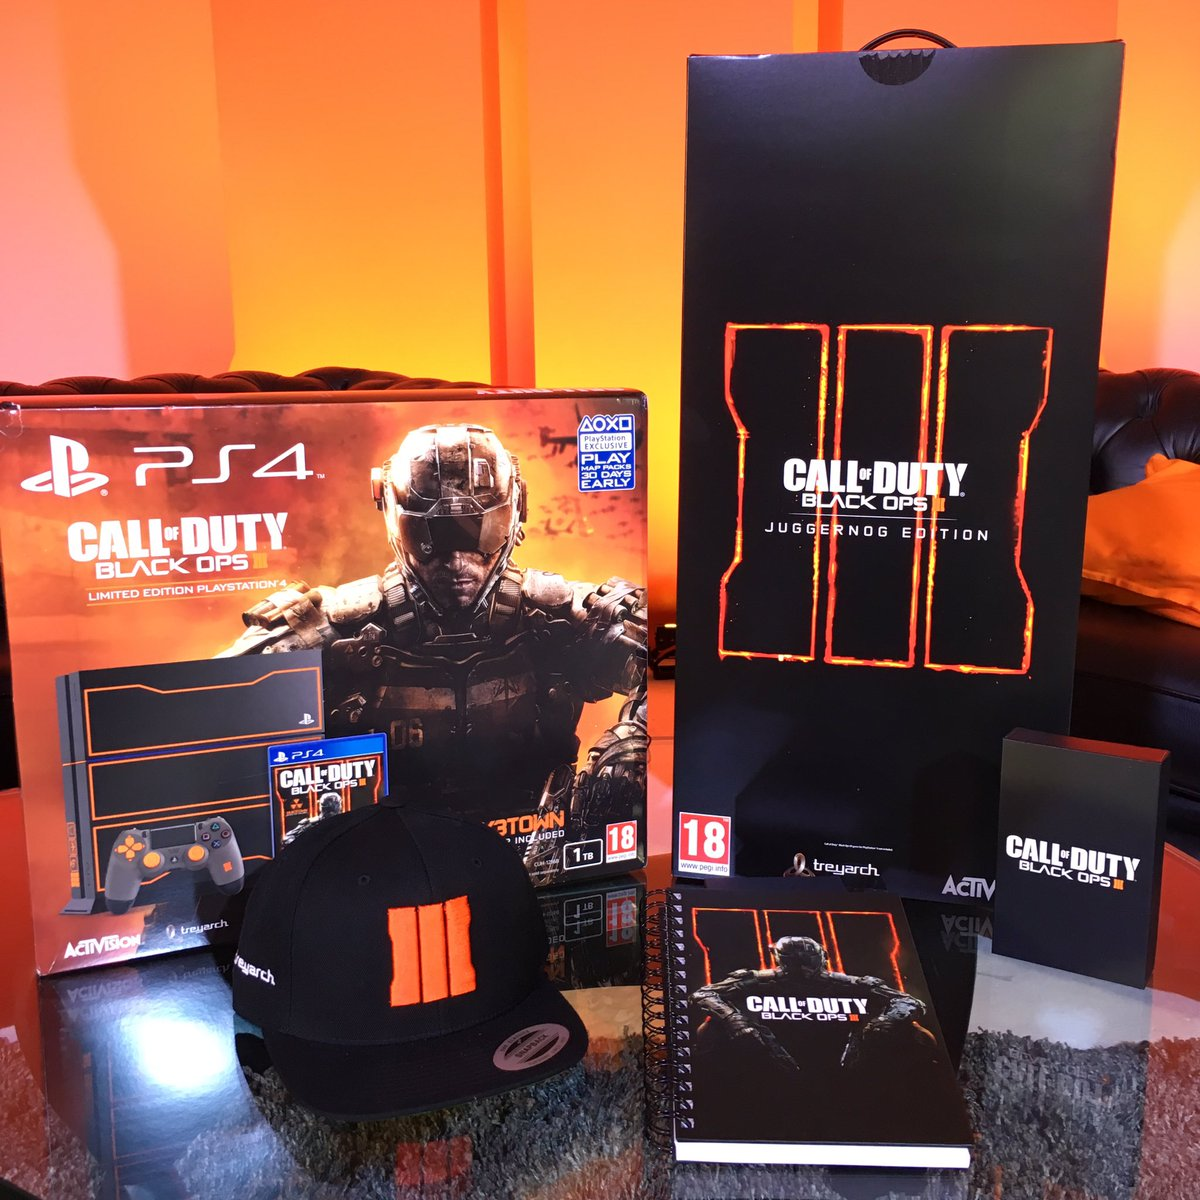 EPIC GIVEAWAY- Retweet this tweet to win ALL THIS! Good luck everyone!